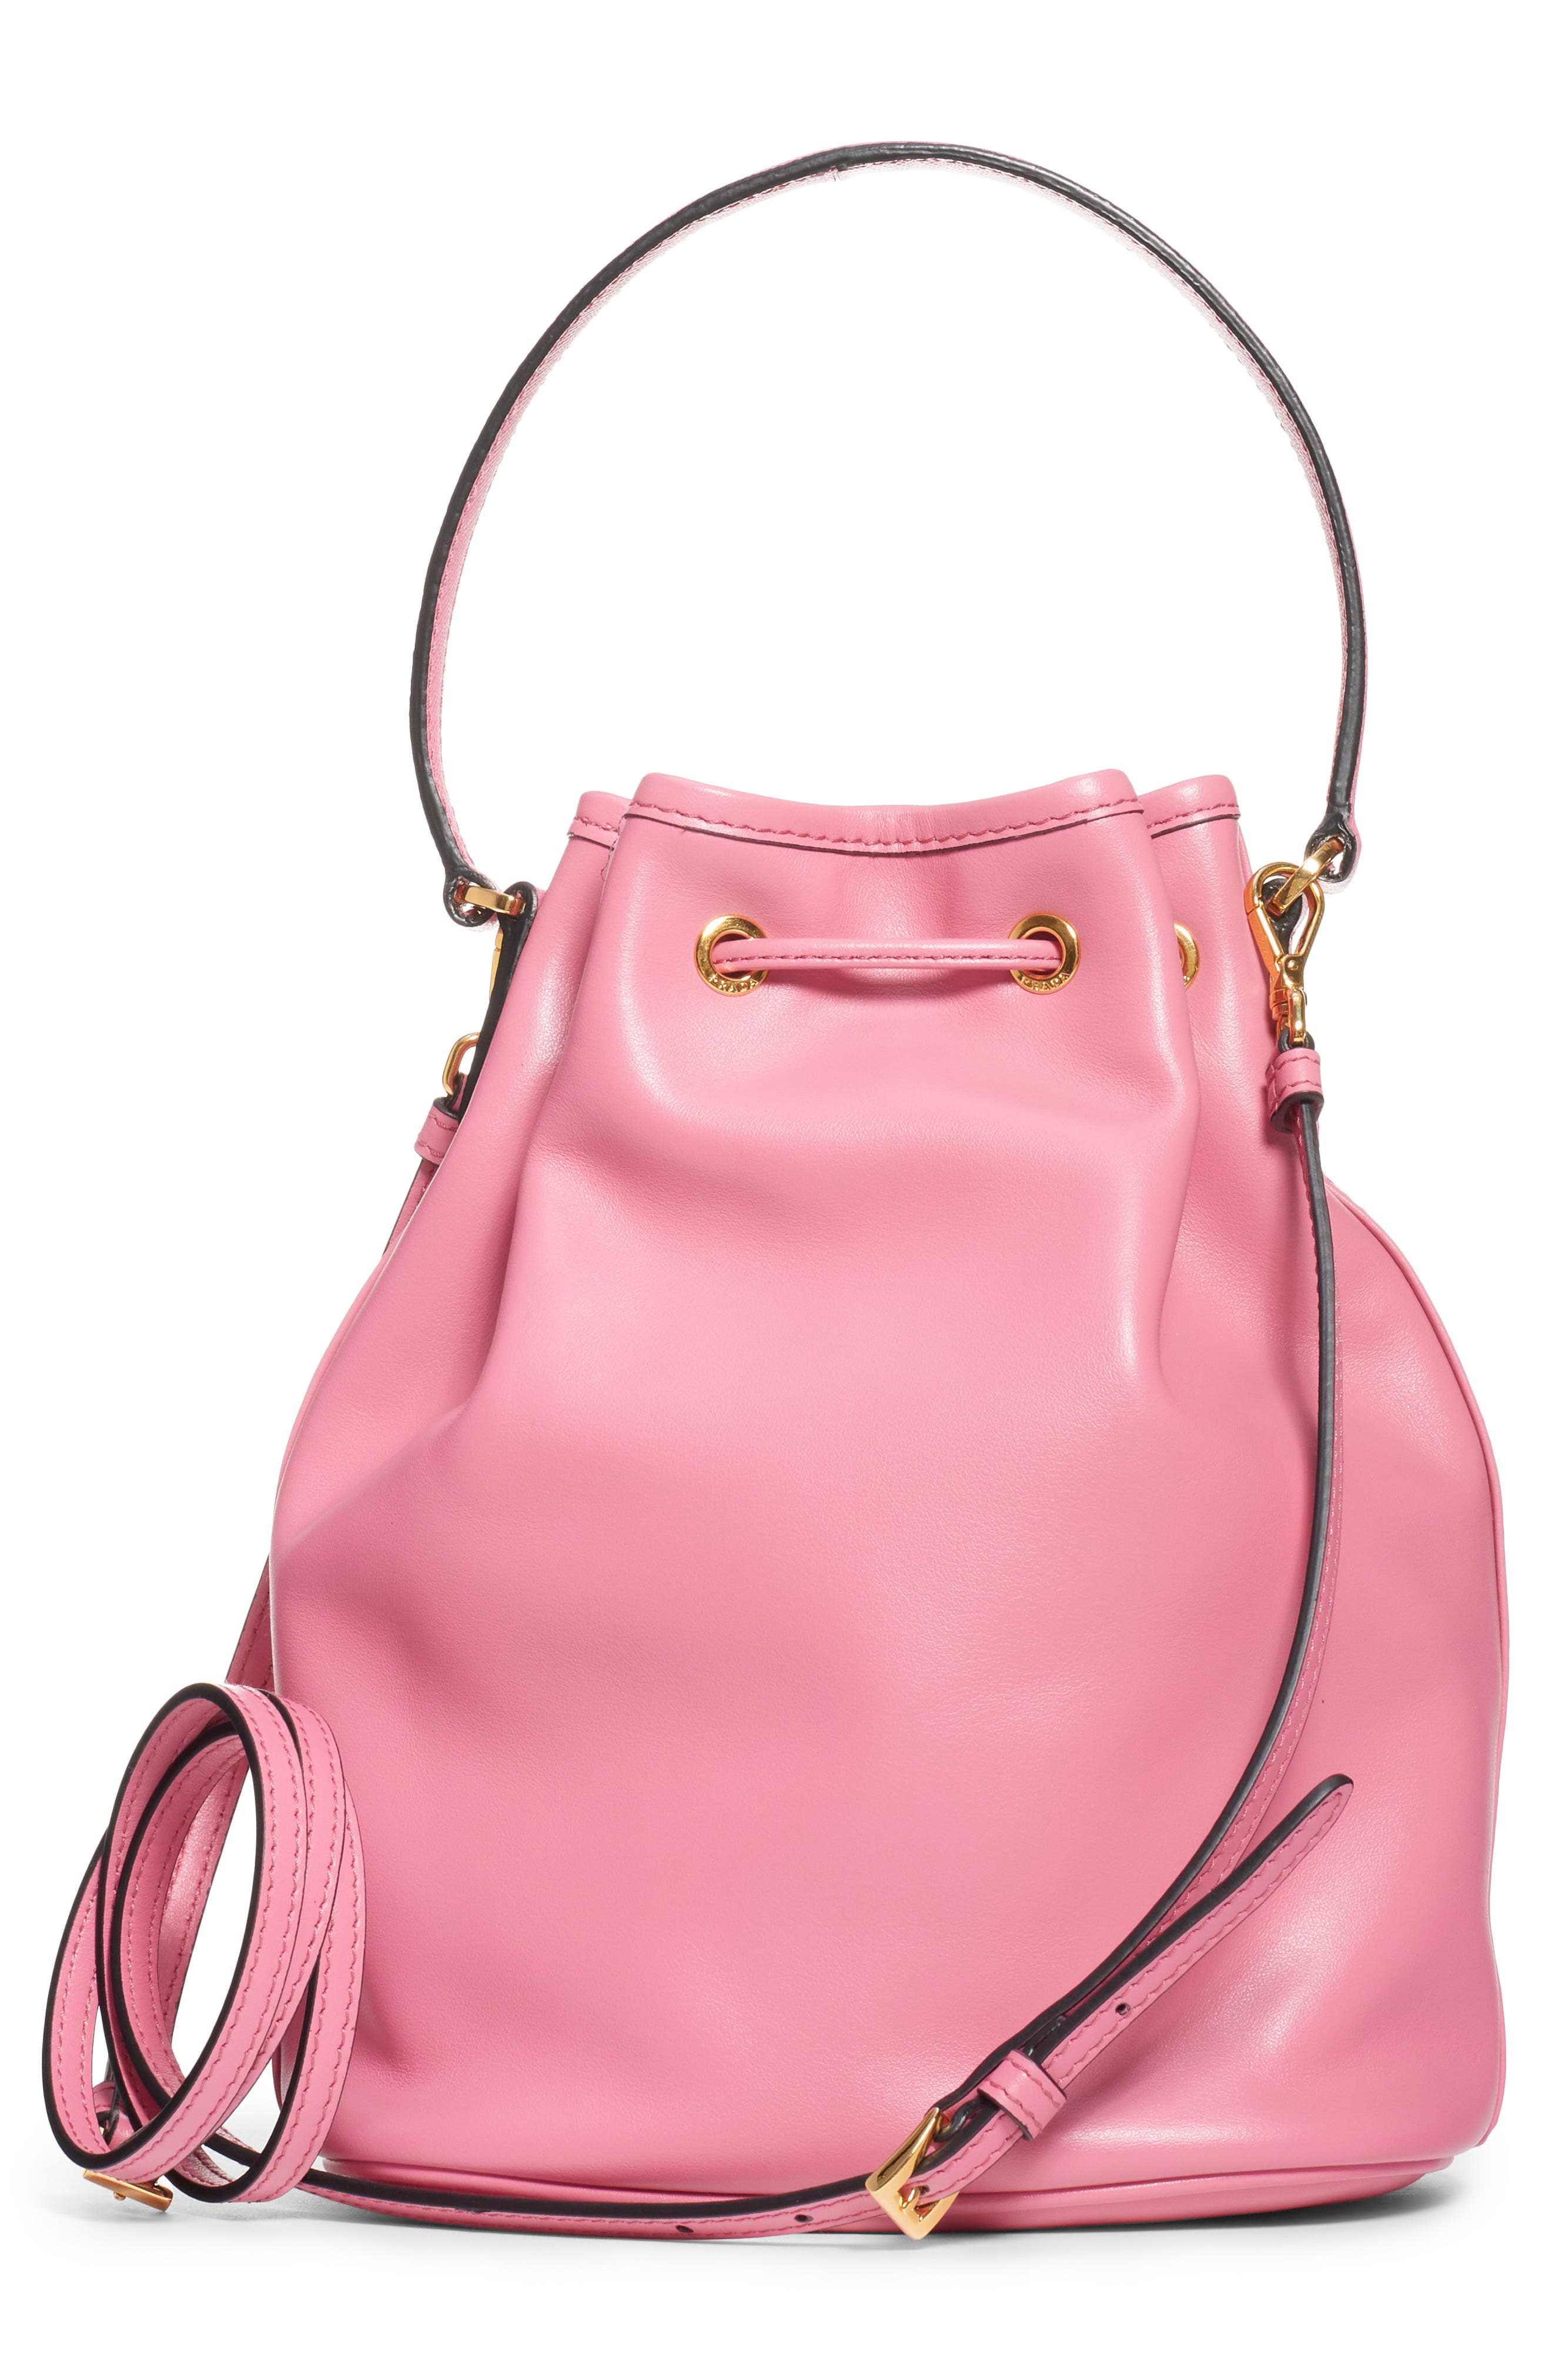 PRADA,                             Leather Bucket Bag,                             Alternate thumbnail 2, color,                             BEGONIA